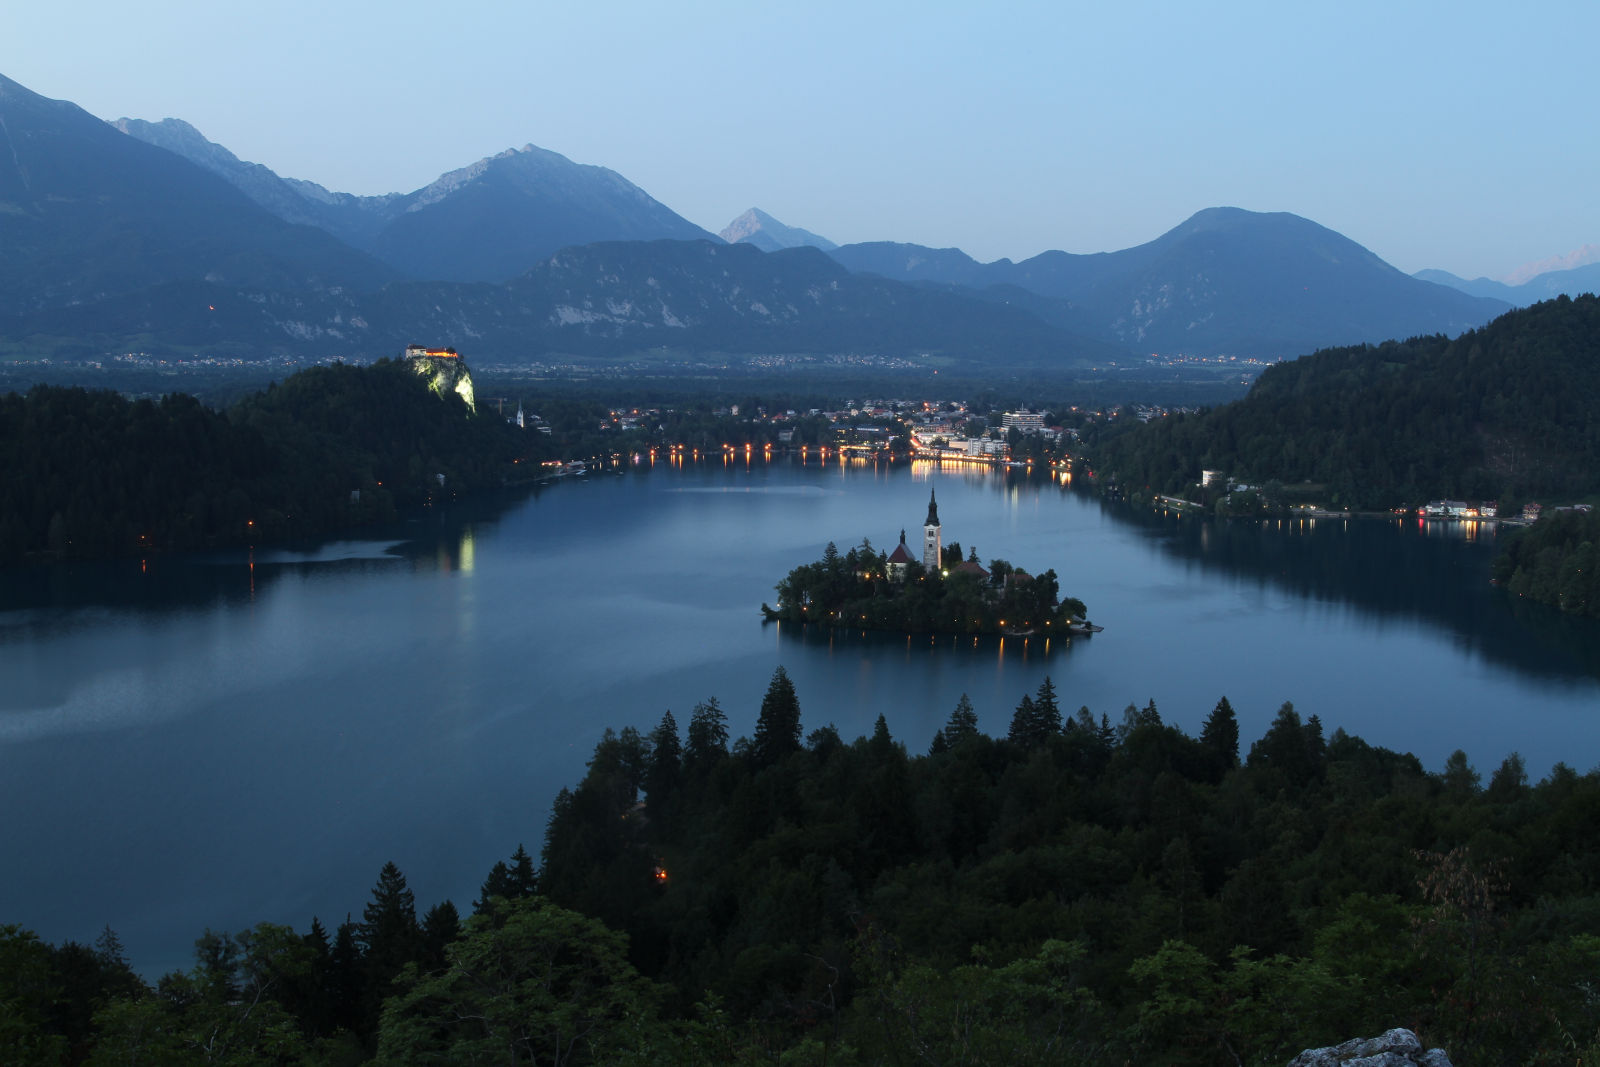 Aerial view of Lake Bled, Slovenia, at night